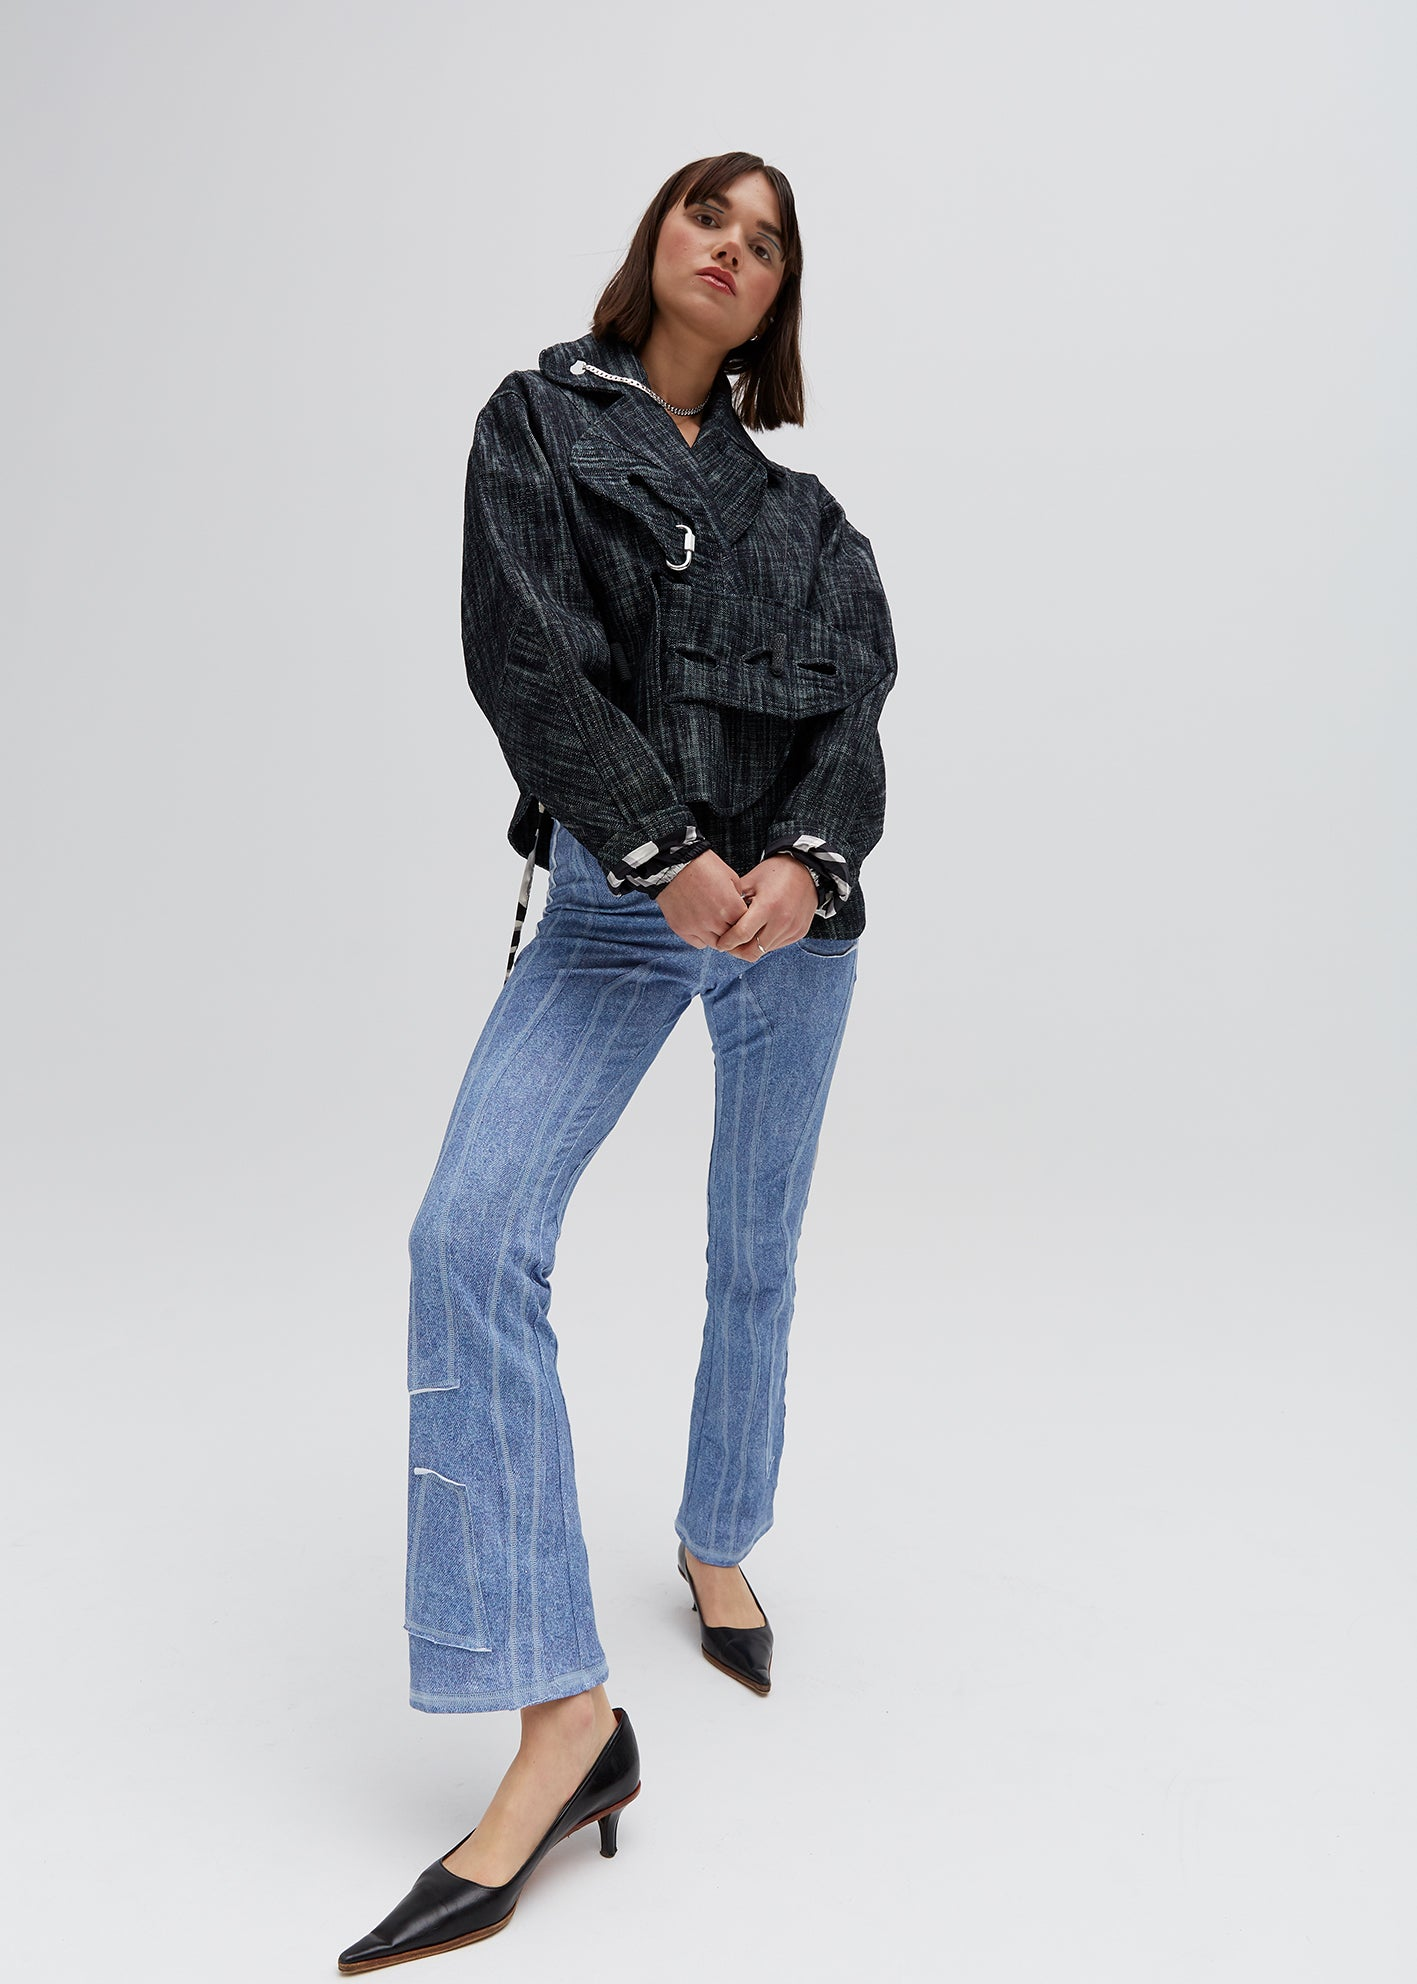 ENOSI jacket denim